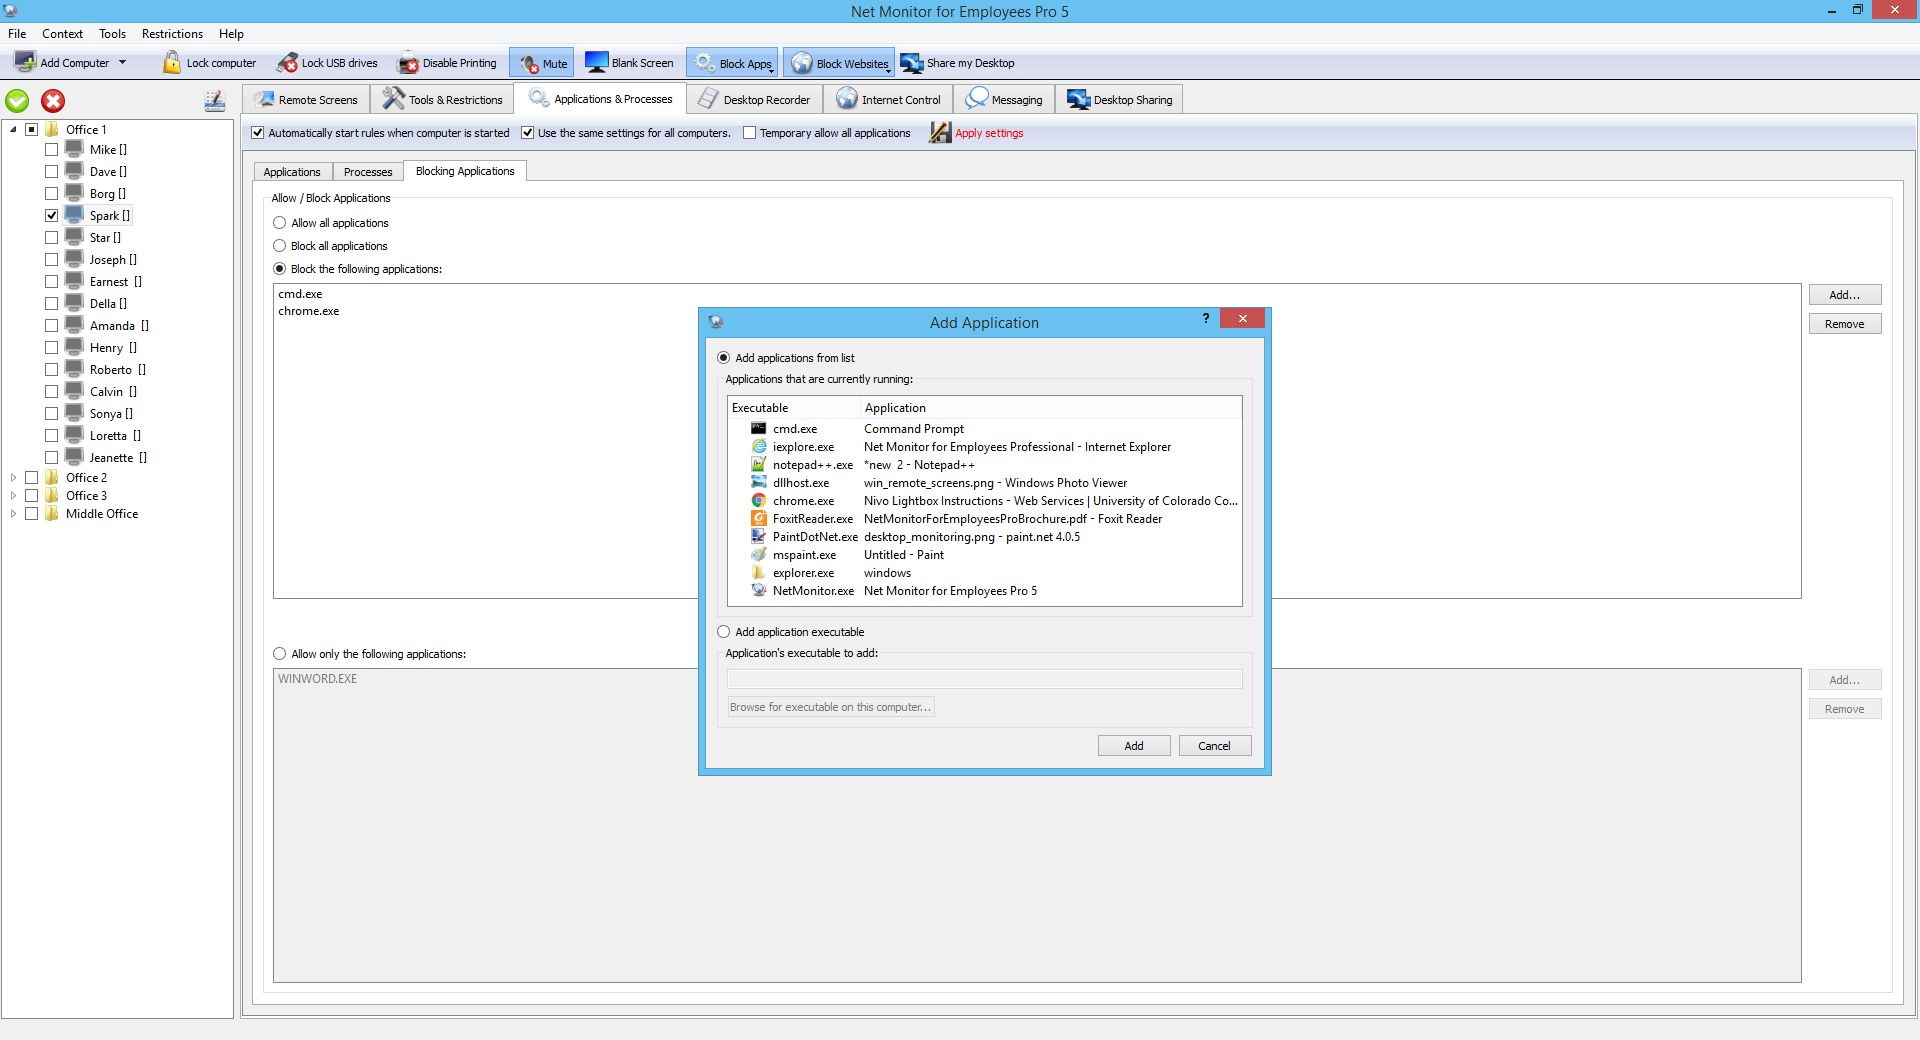 Network LookOut Administrator Pro v4.2.2